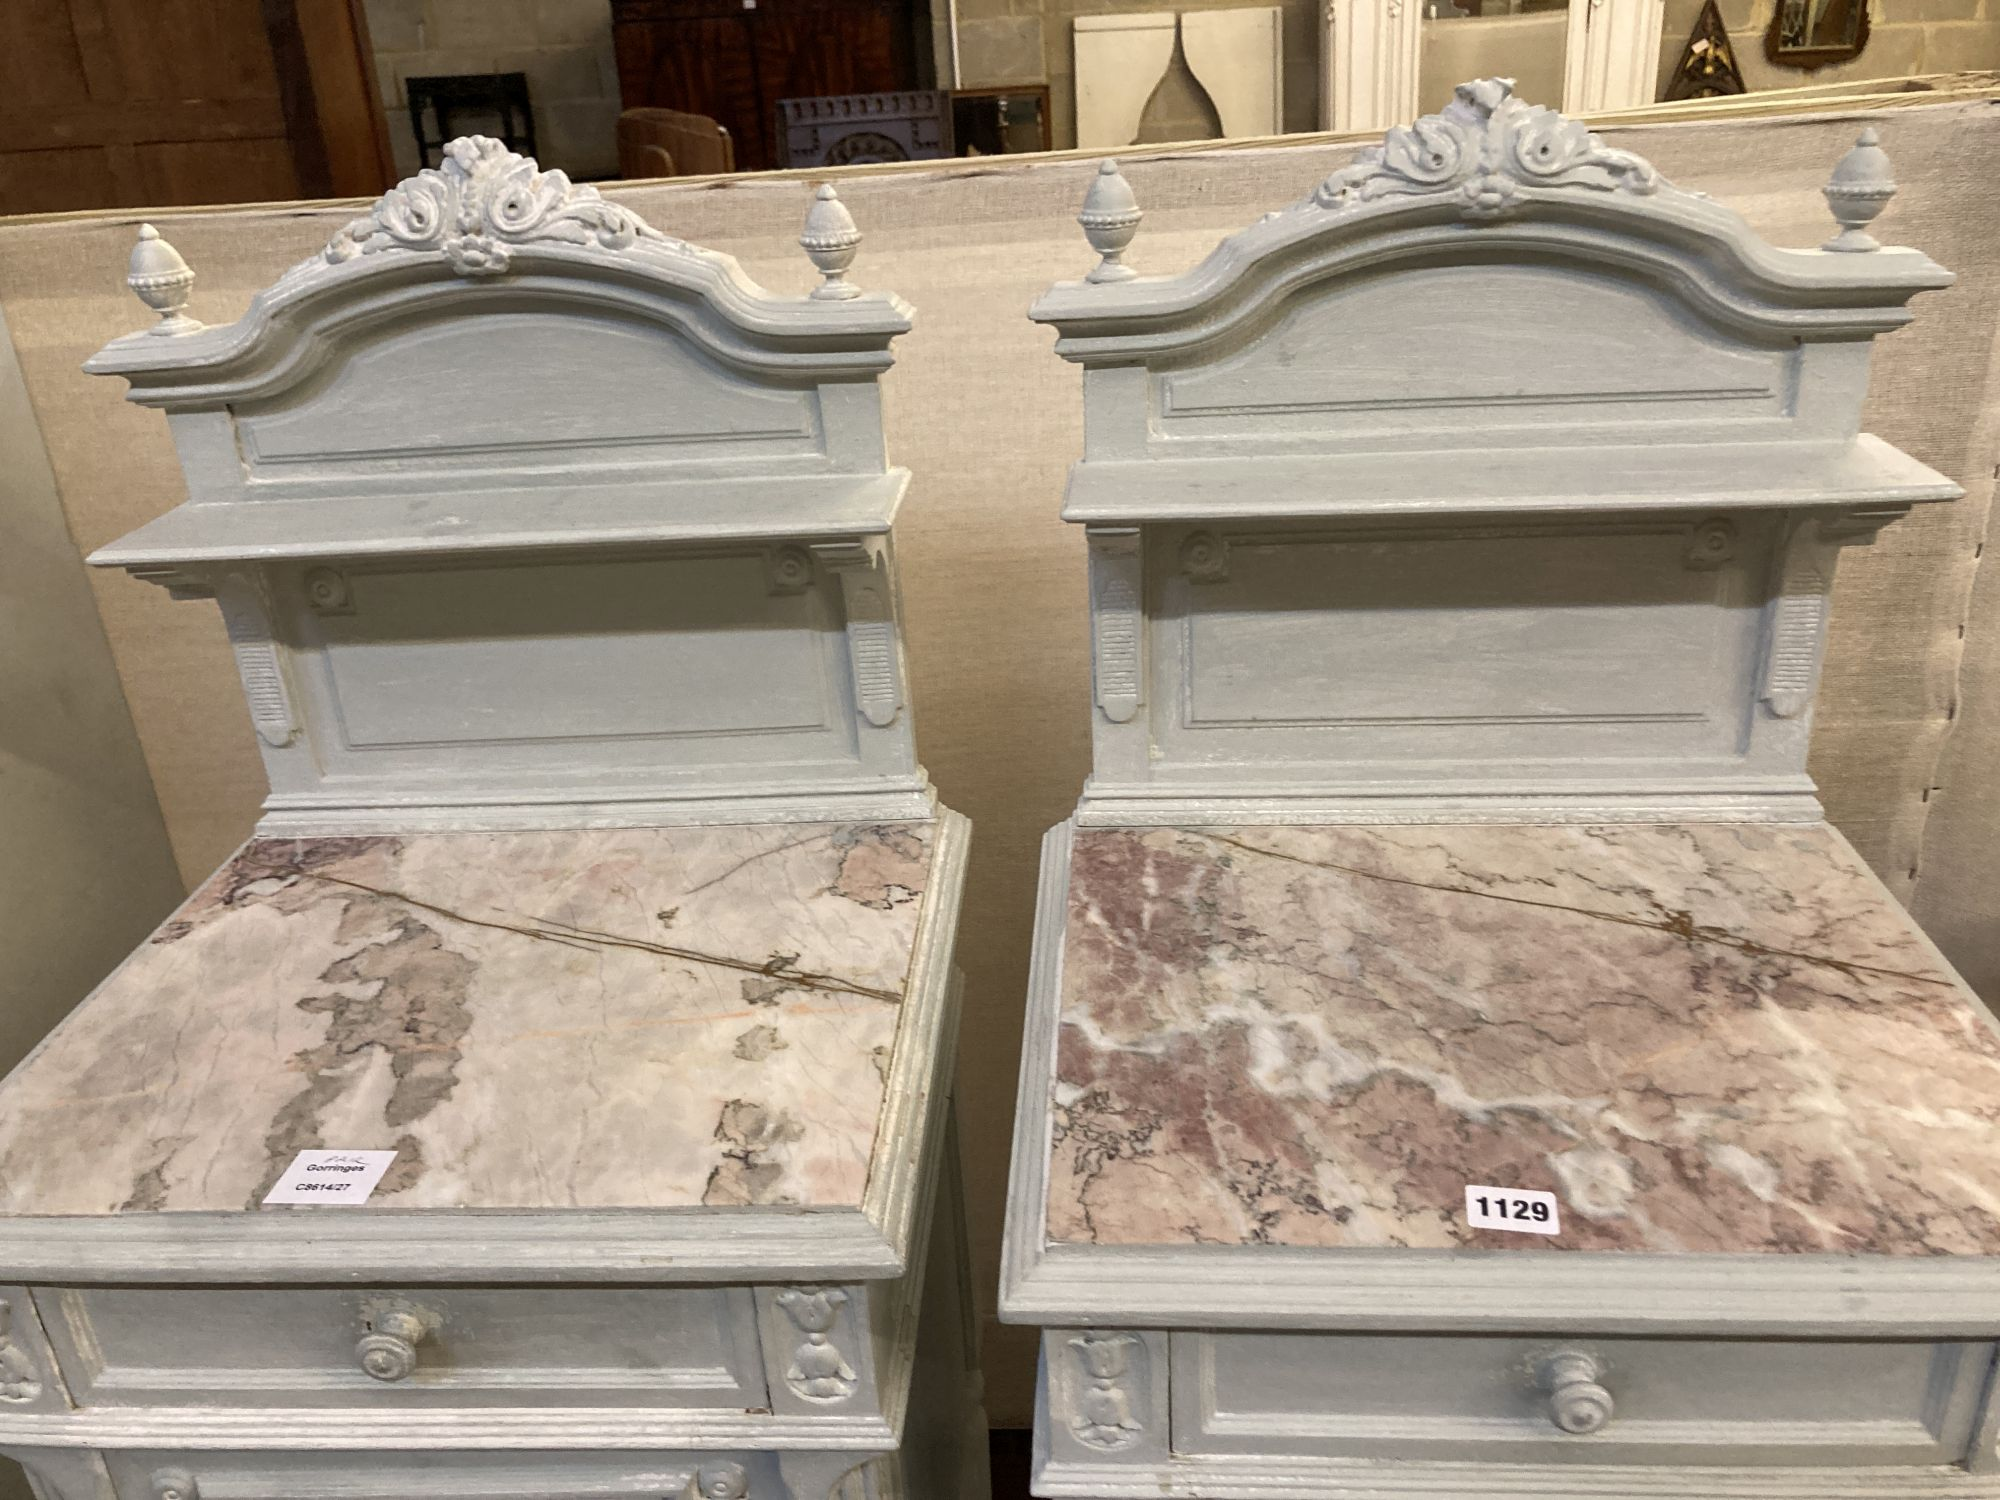 A pair of early 20th century French painted marble top bedside cabinets, width 41cm depth 35cm - Image 2 of 4